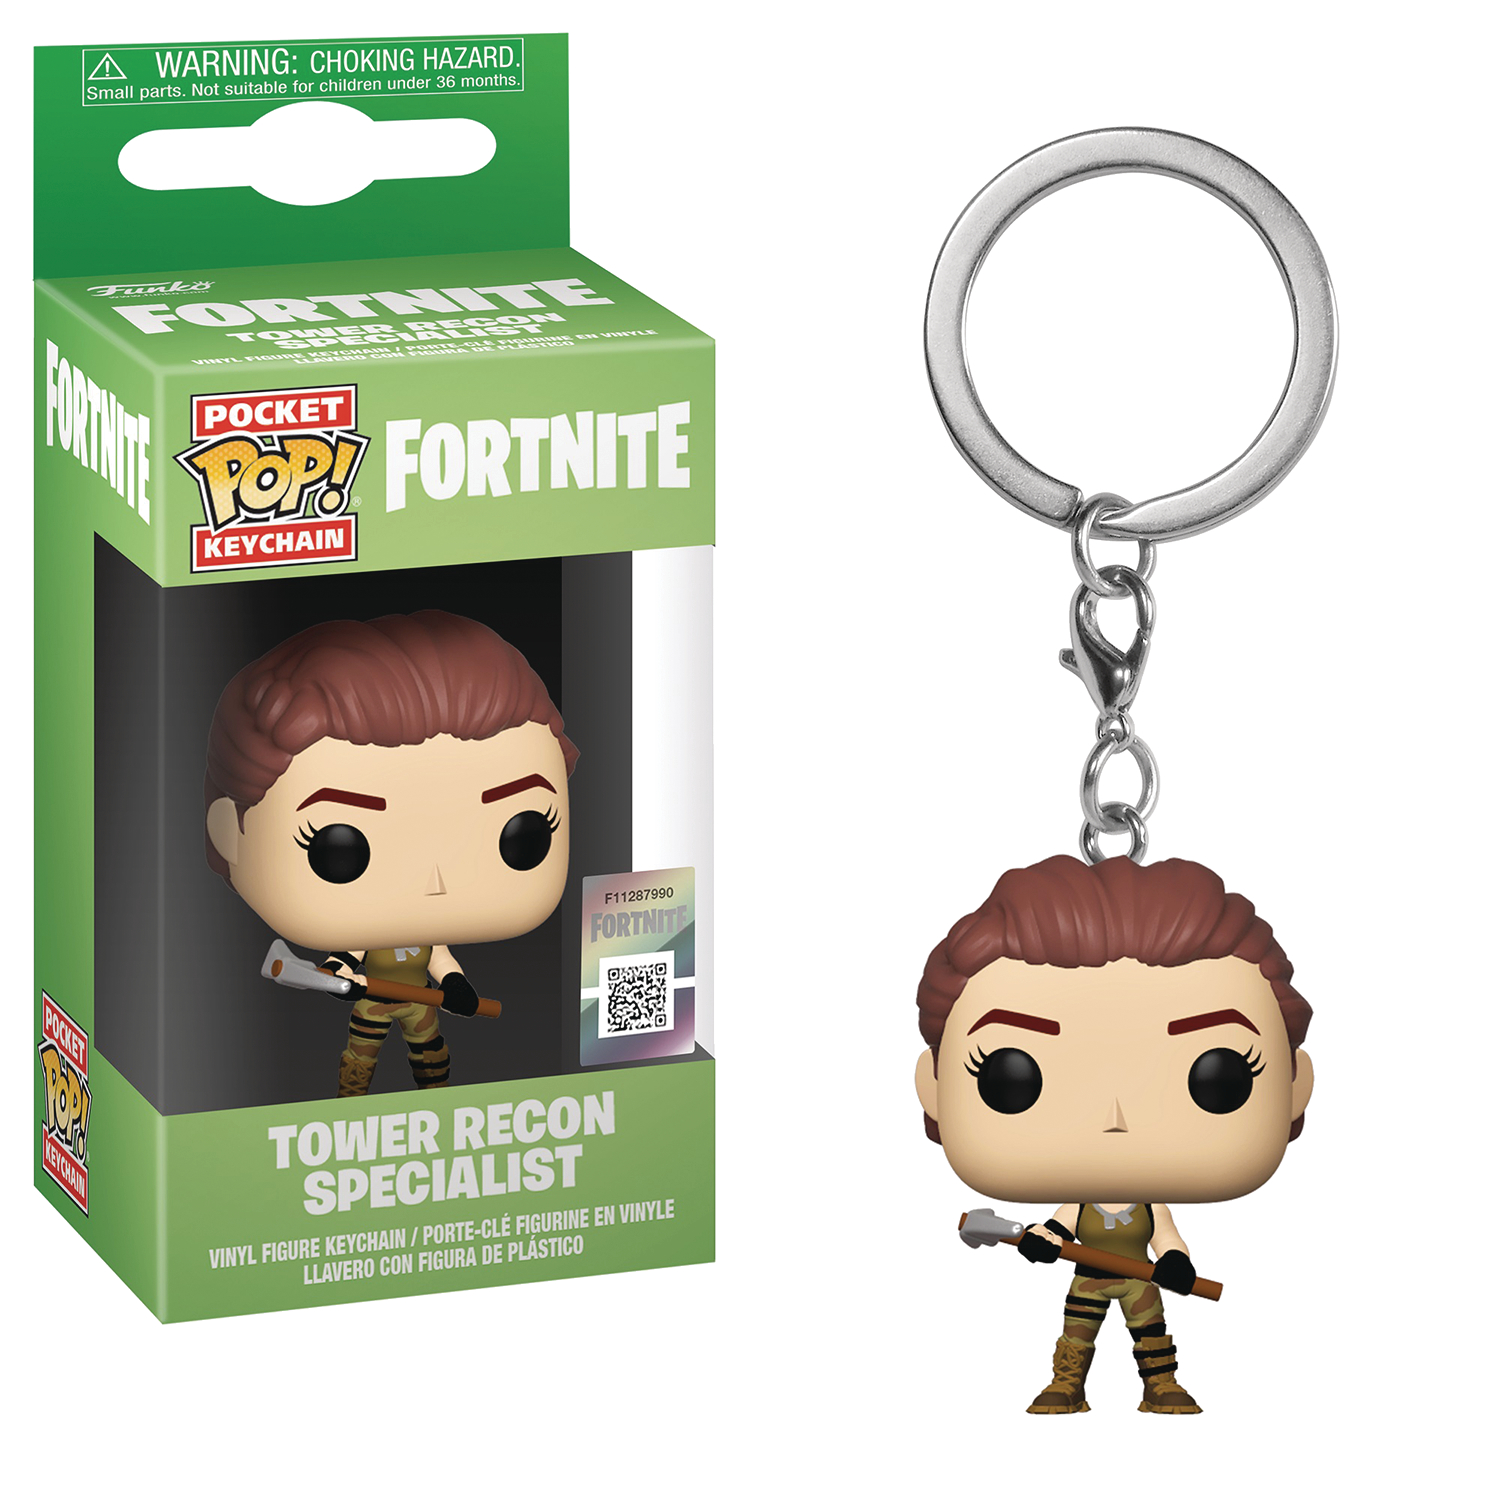 POCKET POP FORTNITE S1A TOWER RECON FIG KEYCHAIN